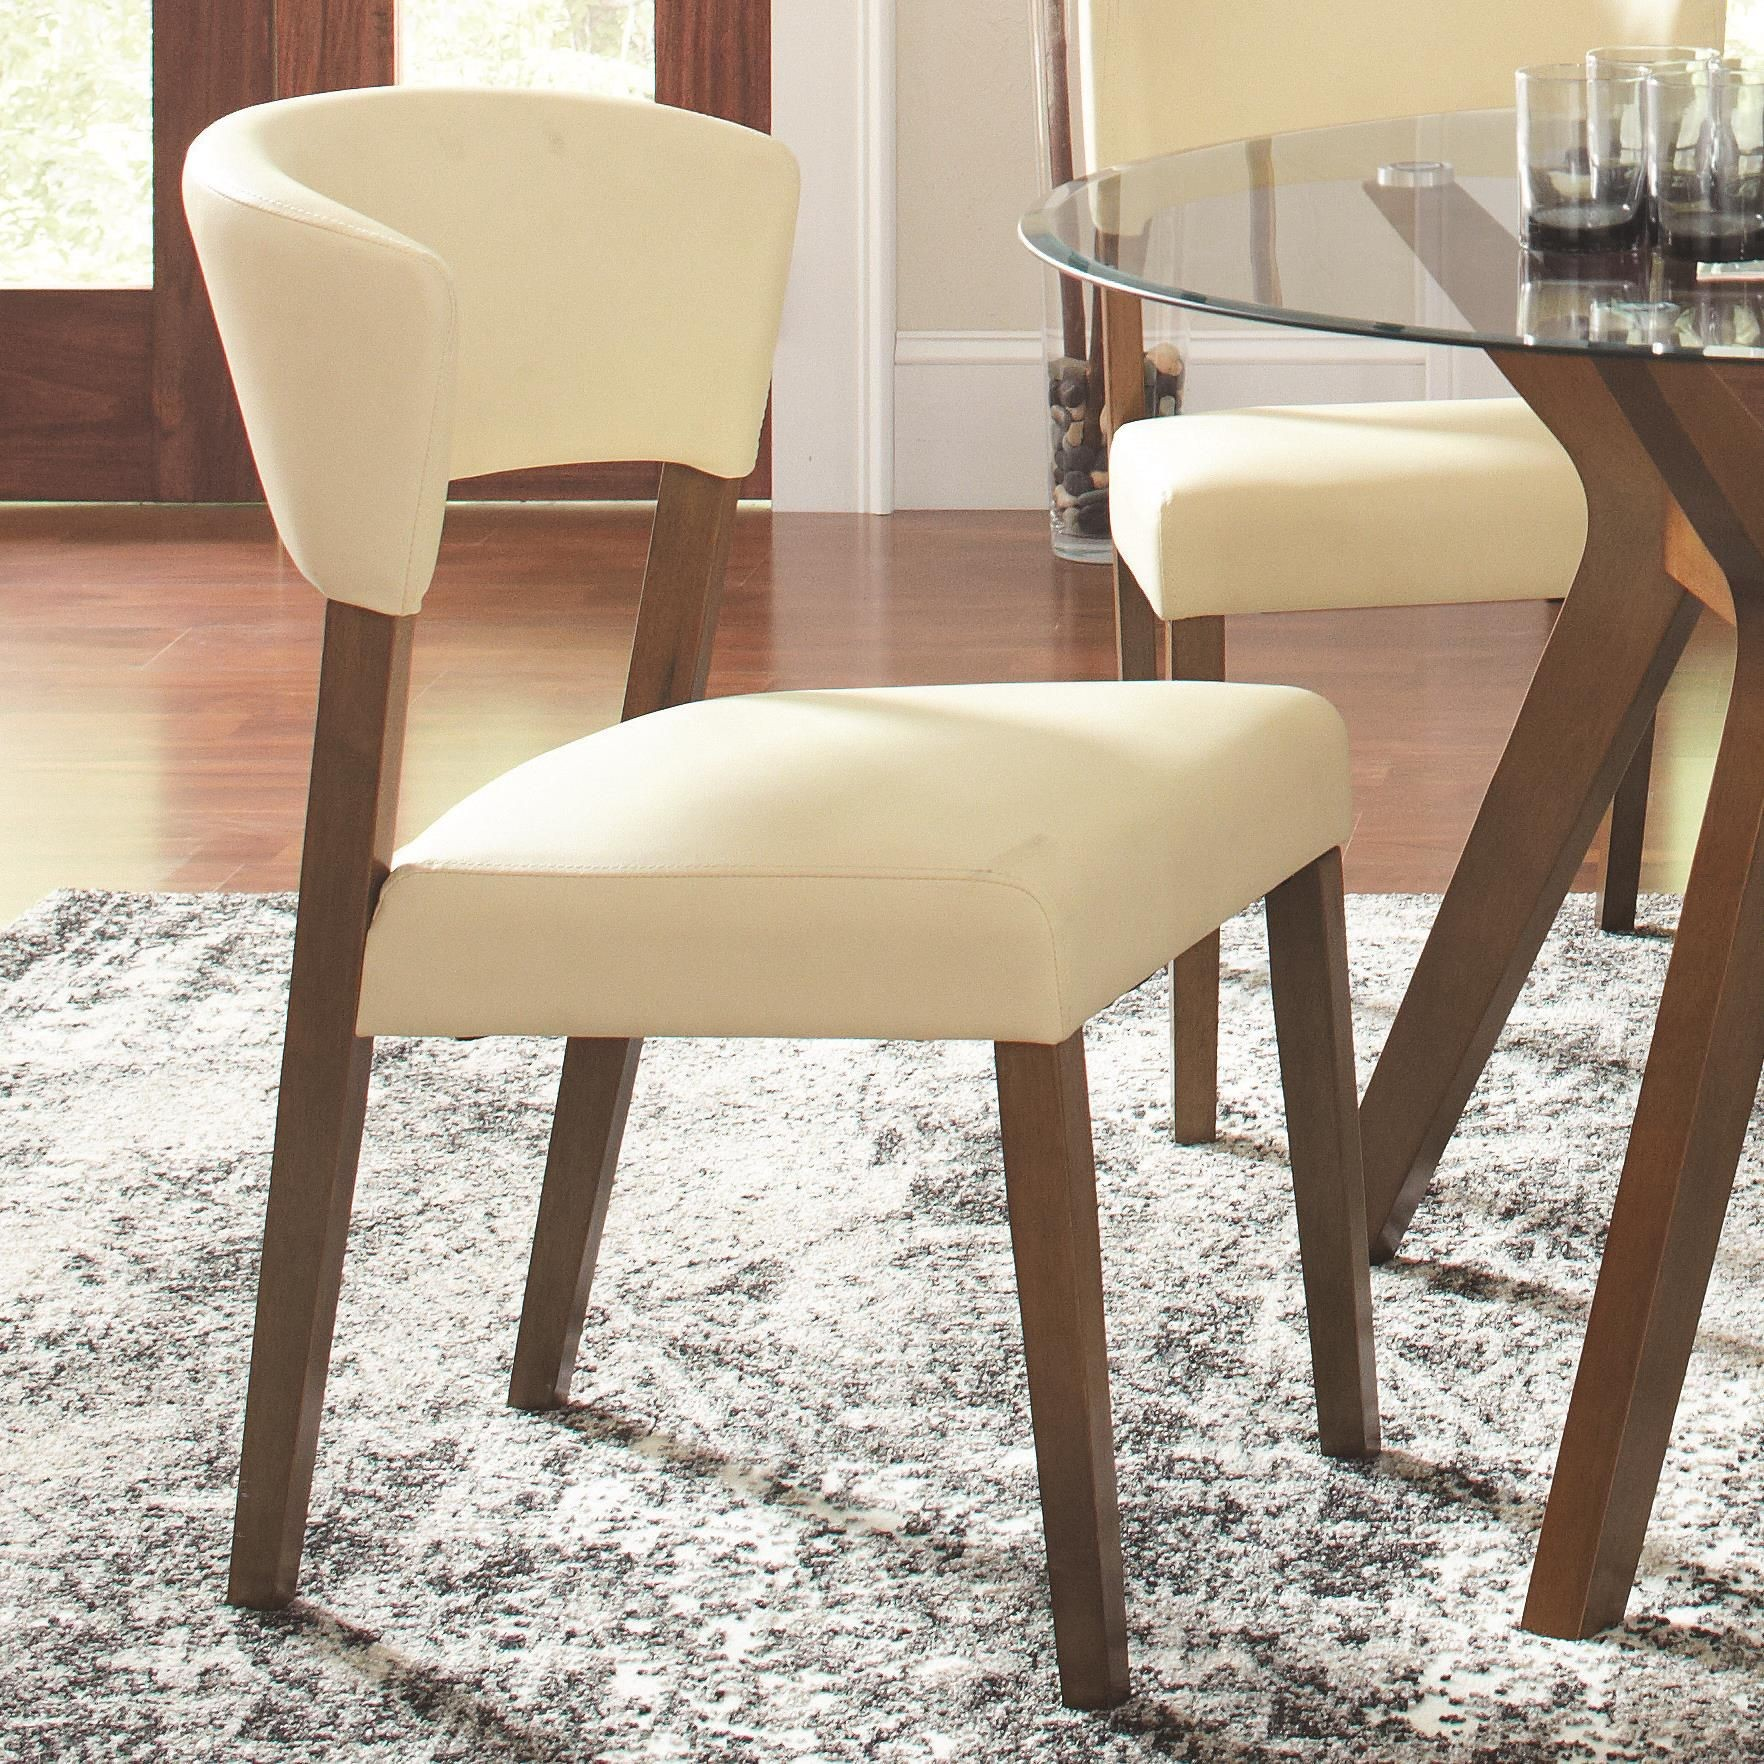 Paxton Cream Upholstered Dining Chair Set of 2 from ...